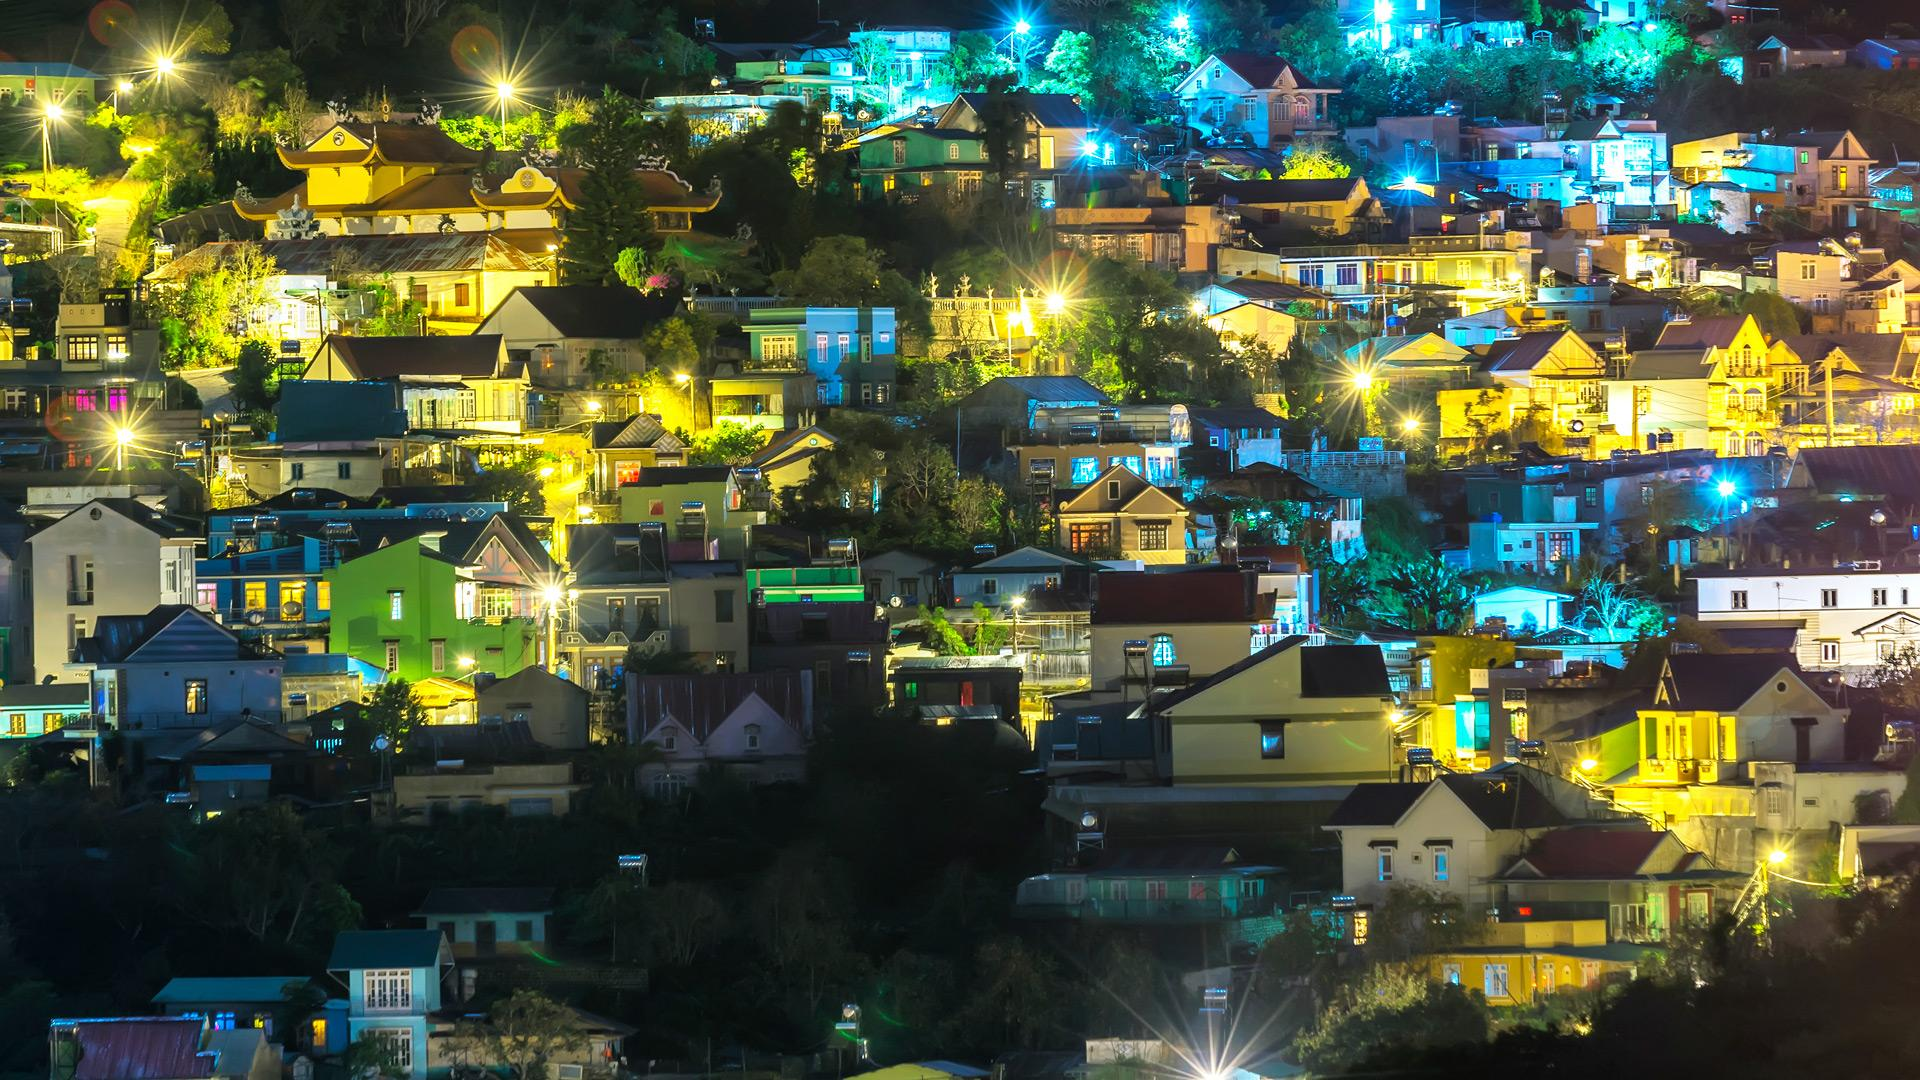 Neighborhood on a hill with lights on at night